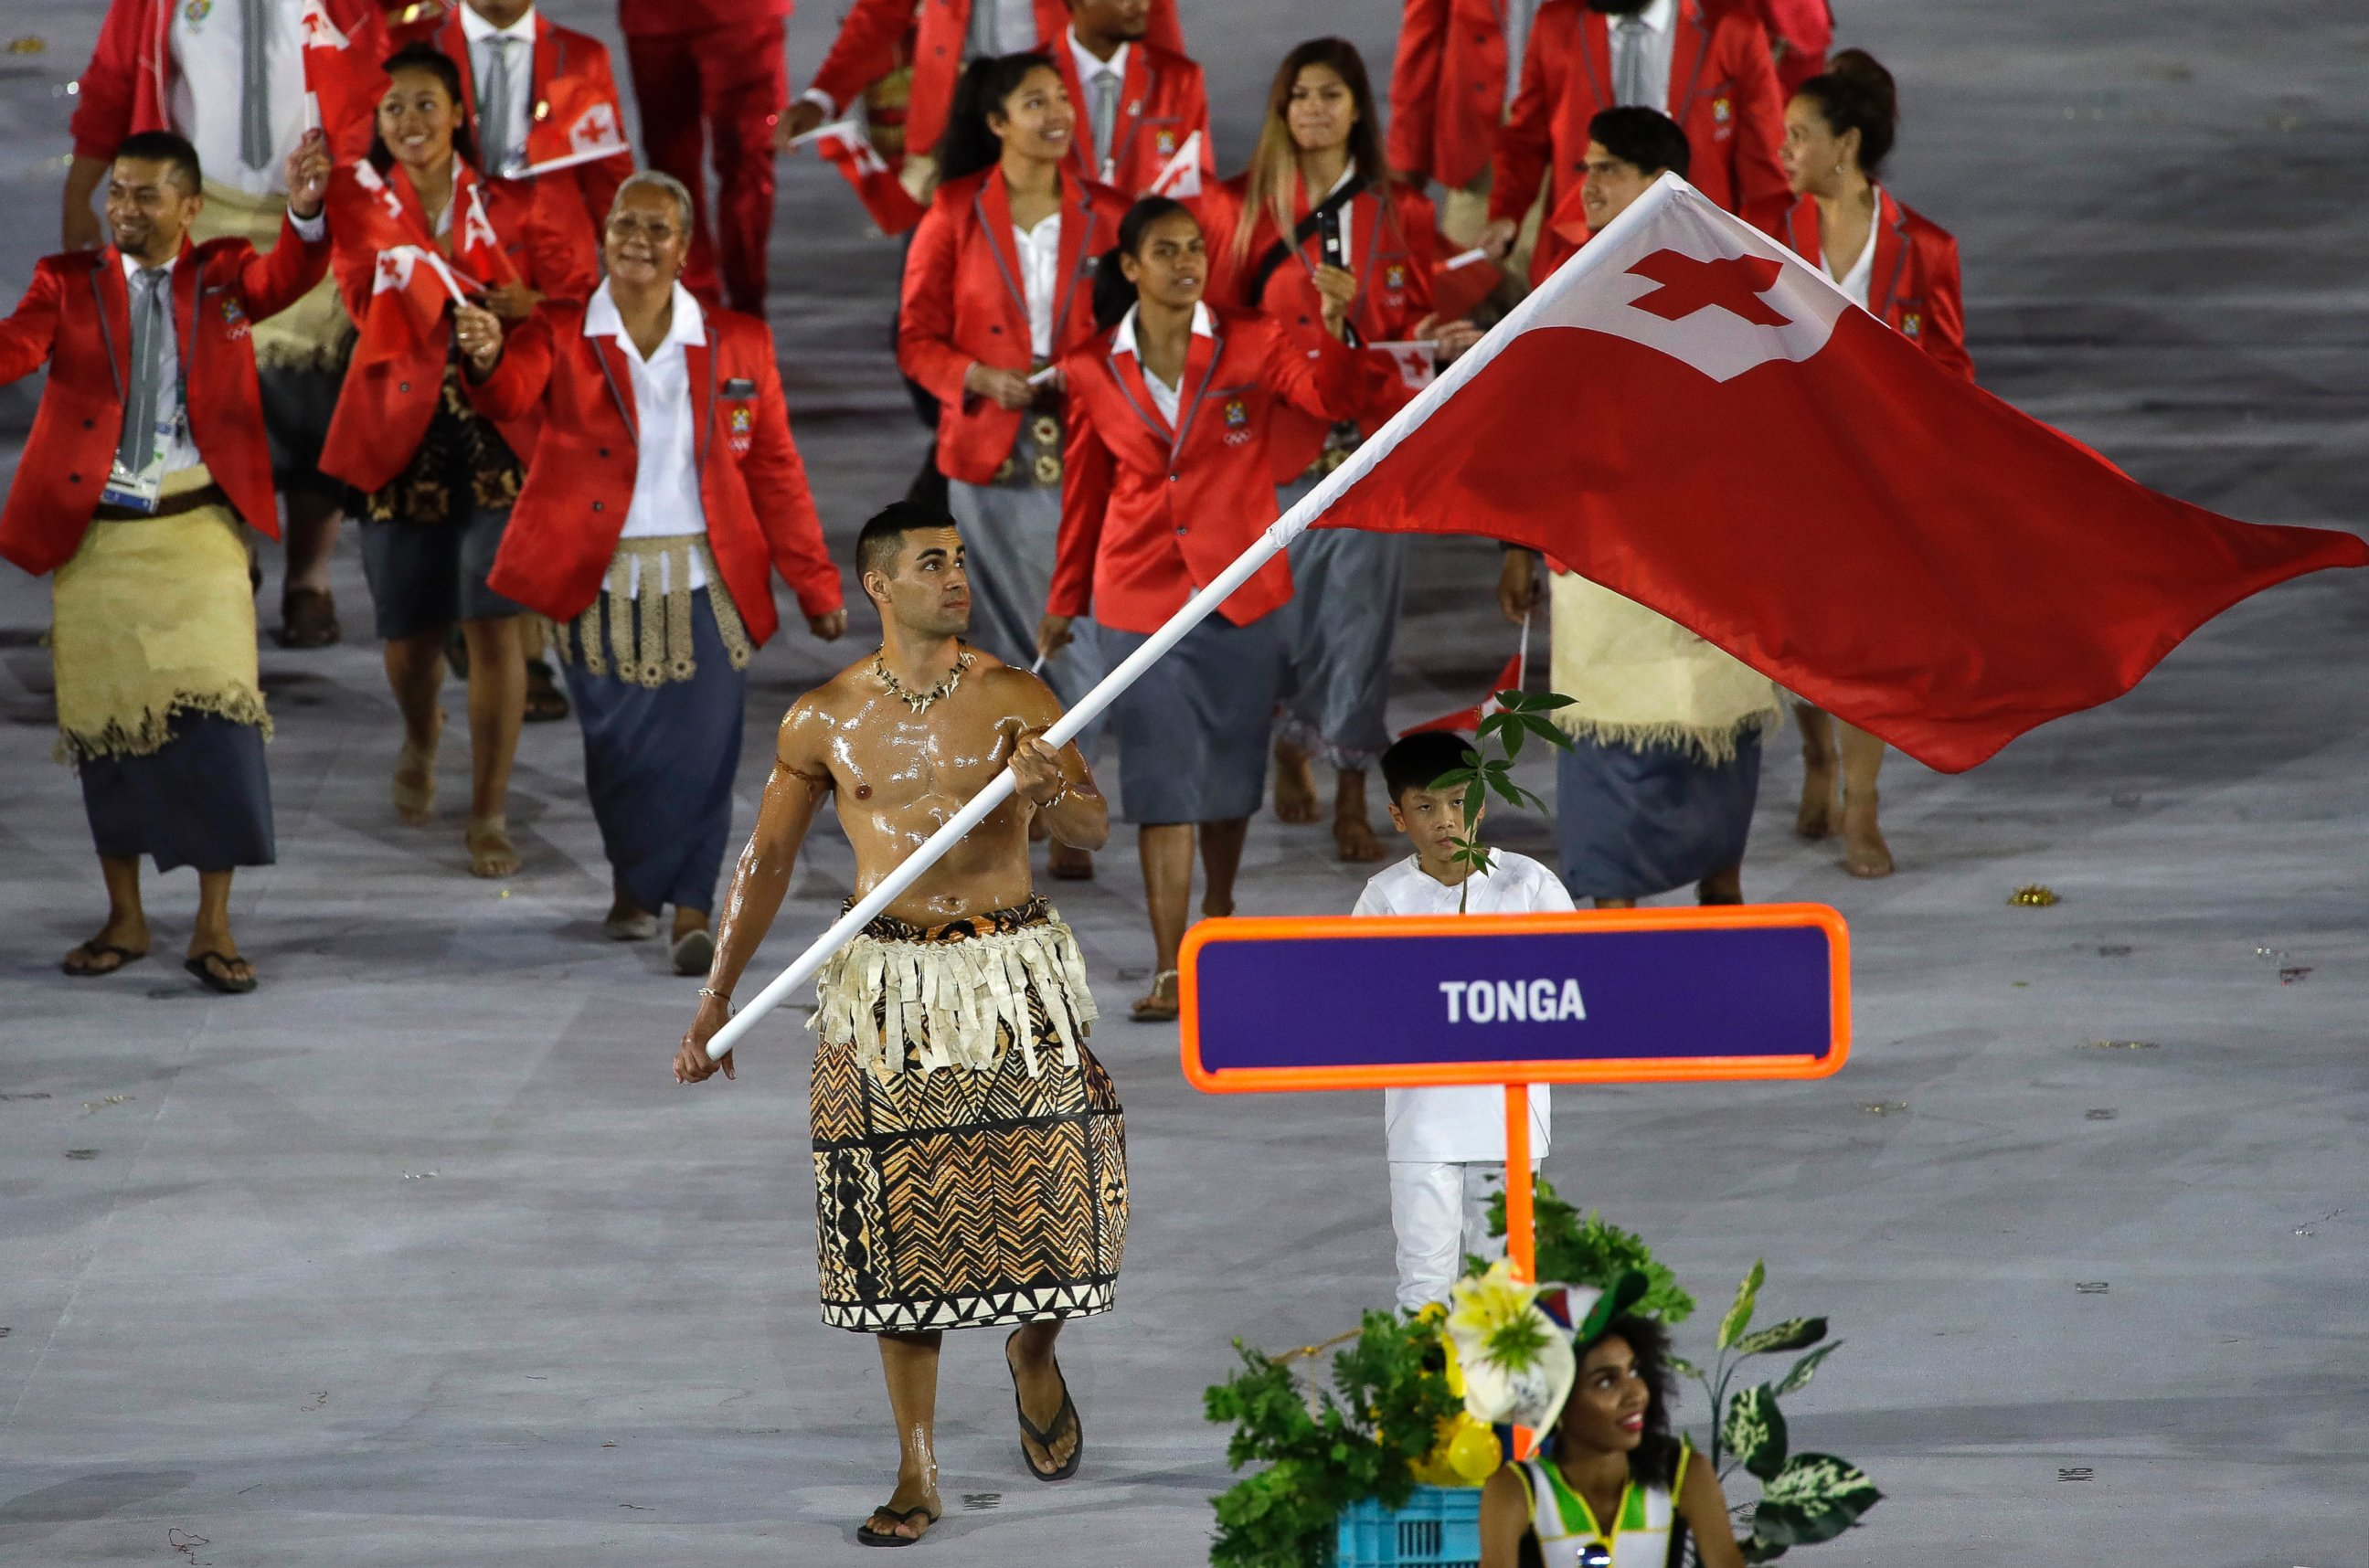 Tonga's Olympic team enters the stadium during the Opening Ceremonies in Rio de Janeiro, Brazil, on August 5, 2016.